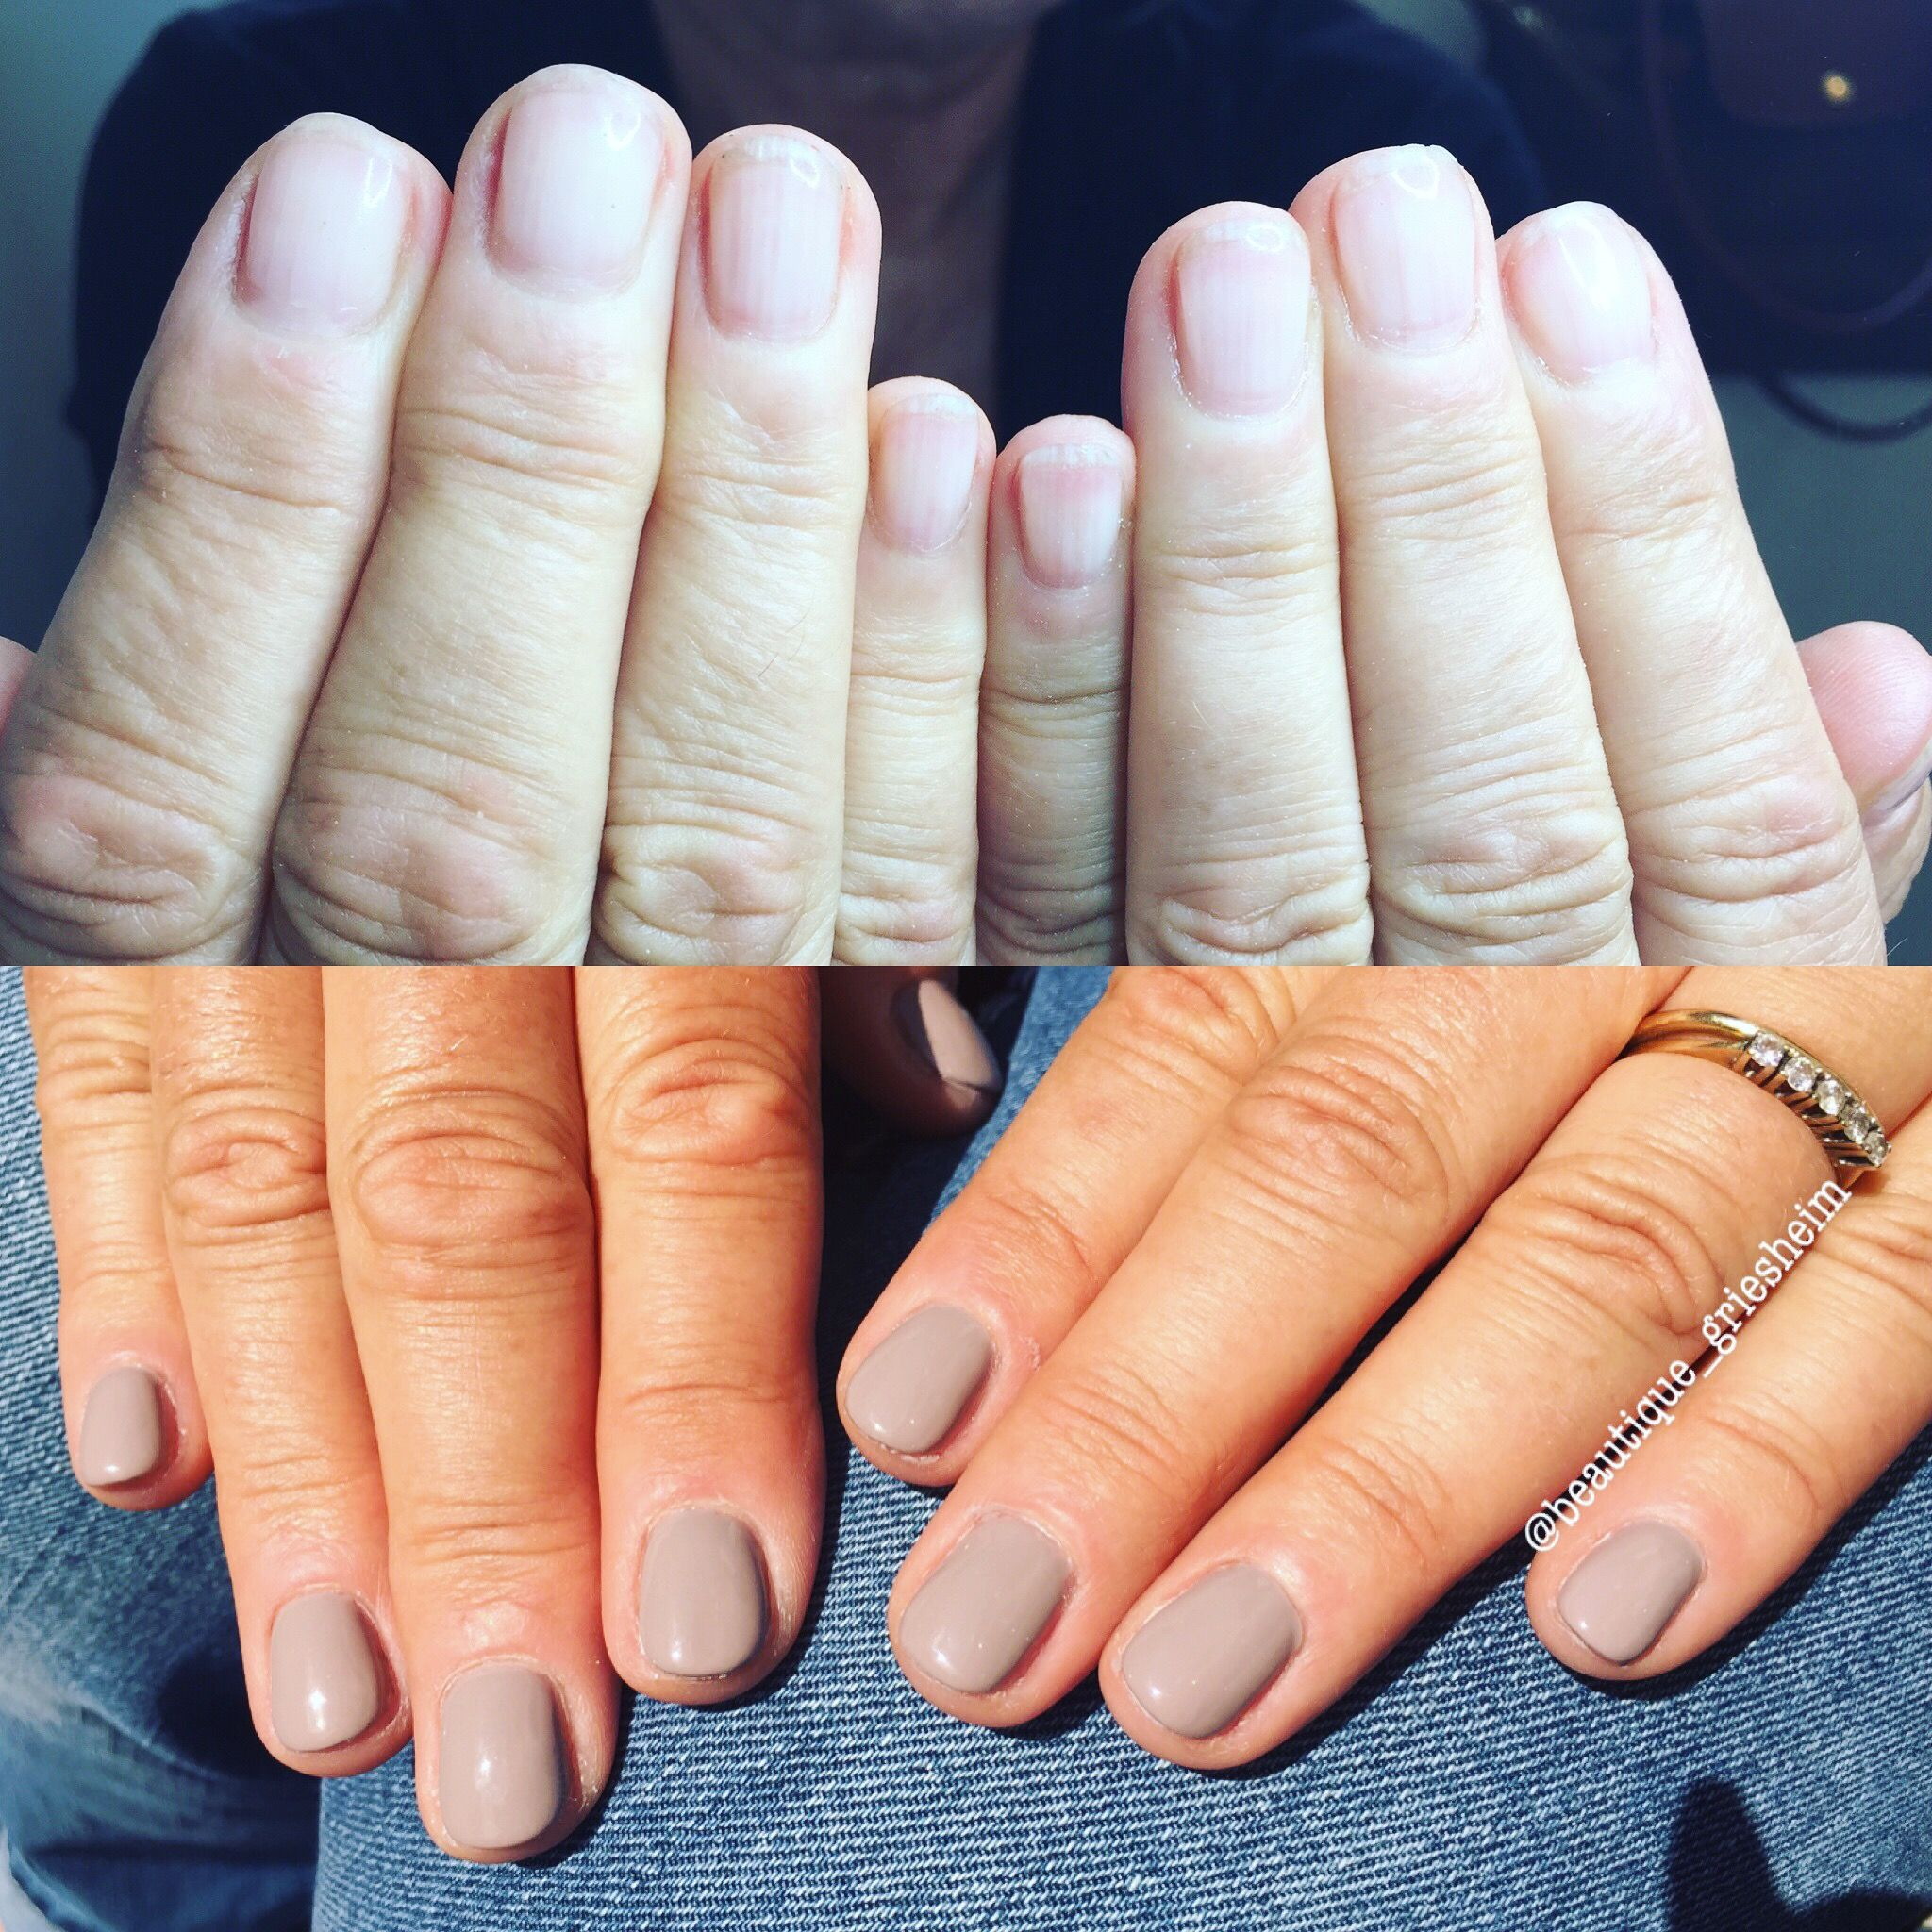 Natural Nails With Strength Gel Before And After Grey Manicure Shellac Style